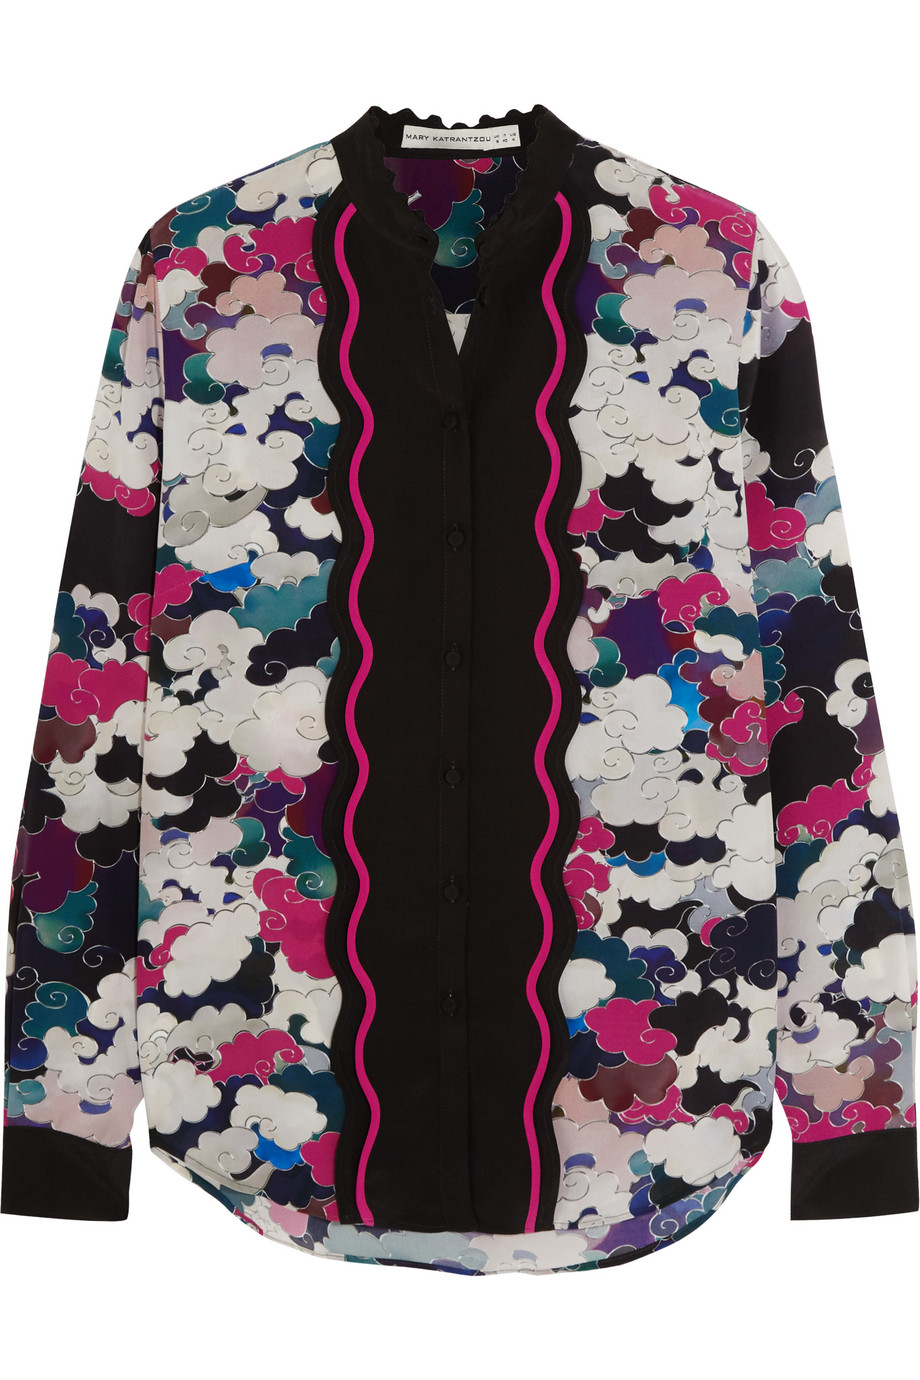 Mary Katrantzou Mica Printed Silk Crepe De Chine Blouse, Magenta/Pink, Women's, Size: 8